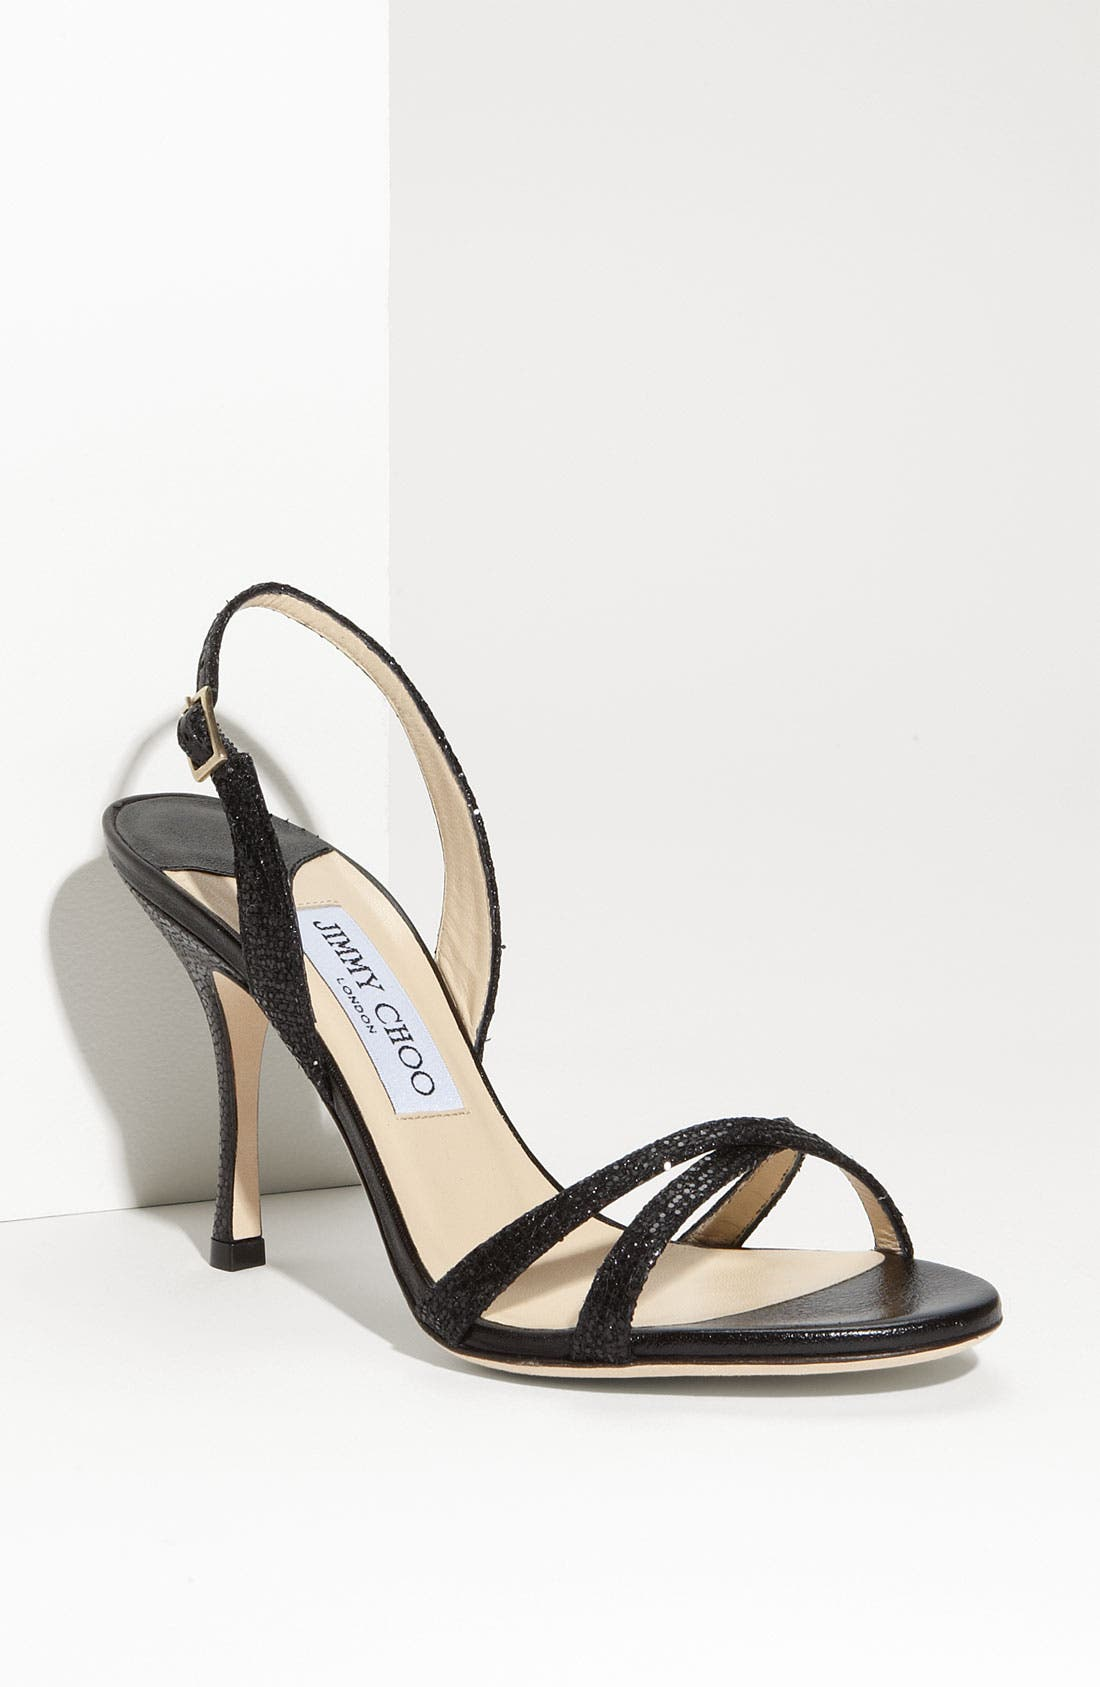 Alternate Image 1 Selected - Jimmy Choo 'India' Sandal